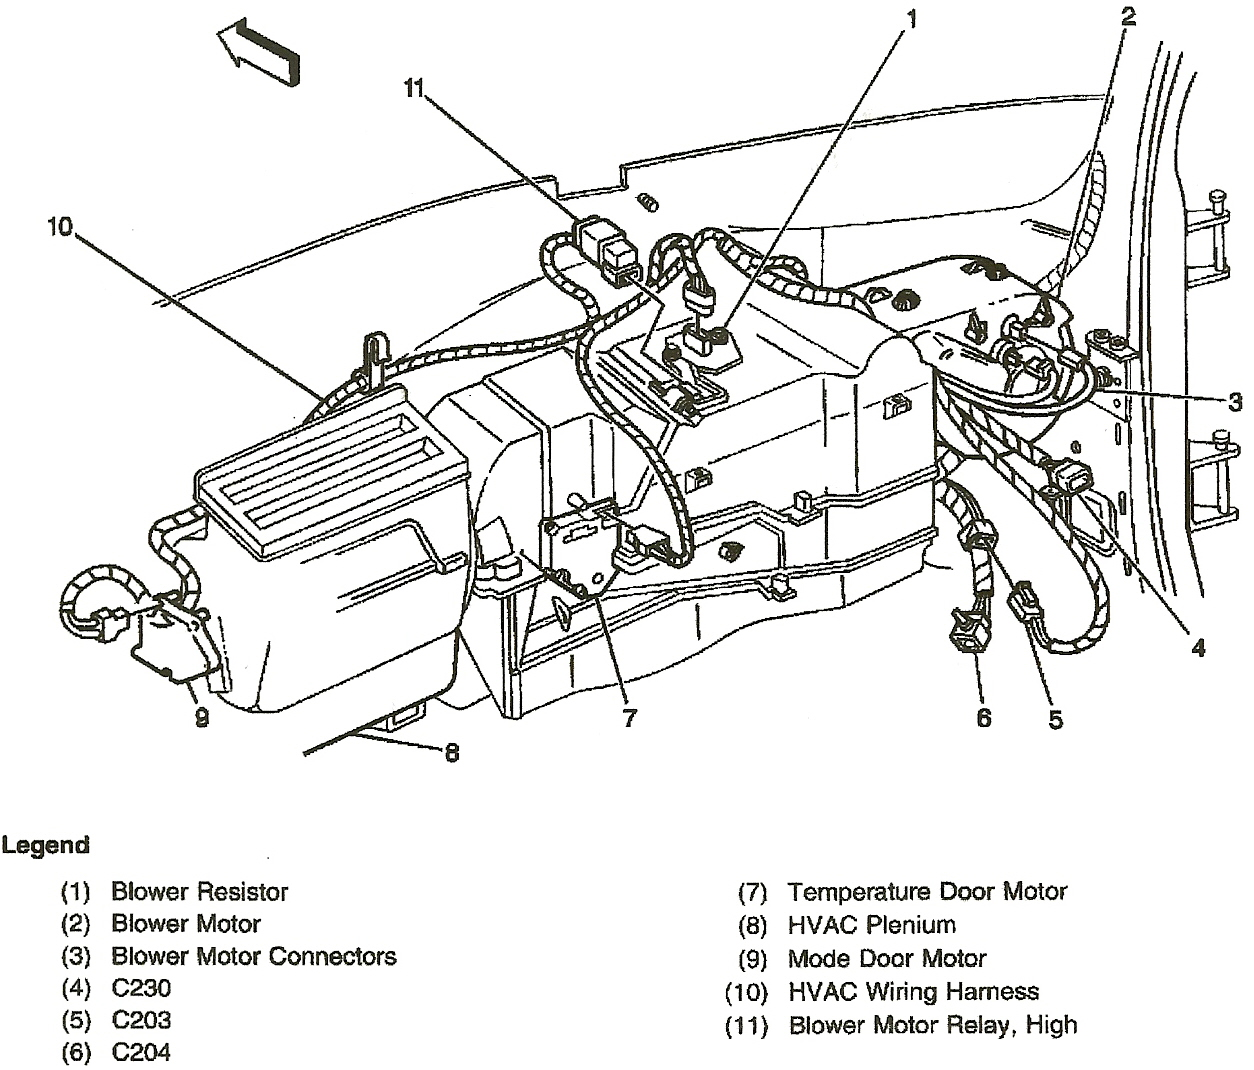 1995 Gmc Jimmy Engine Diagram Wiring Libraries 95 Fuse Block 2001 Third Level2000 Sierra Transmission Level